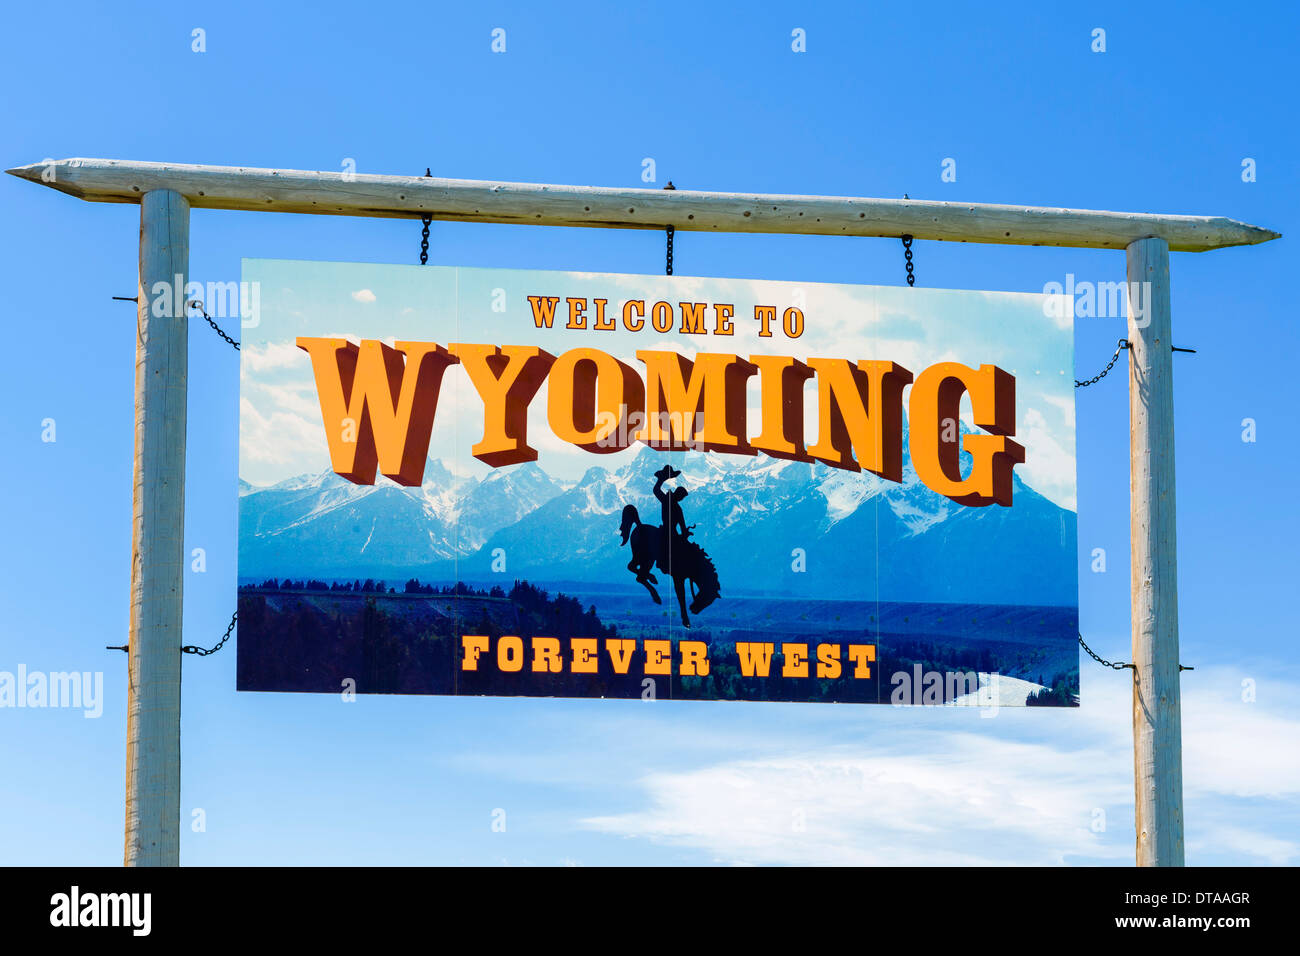 Welcome to Wyoming sign, USA - Stock Image